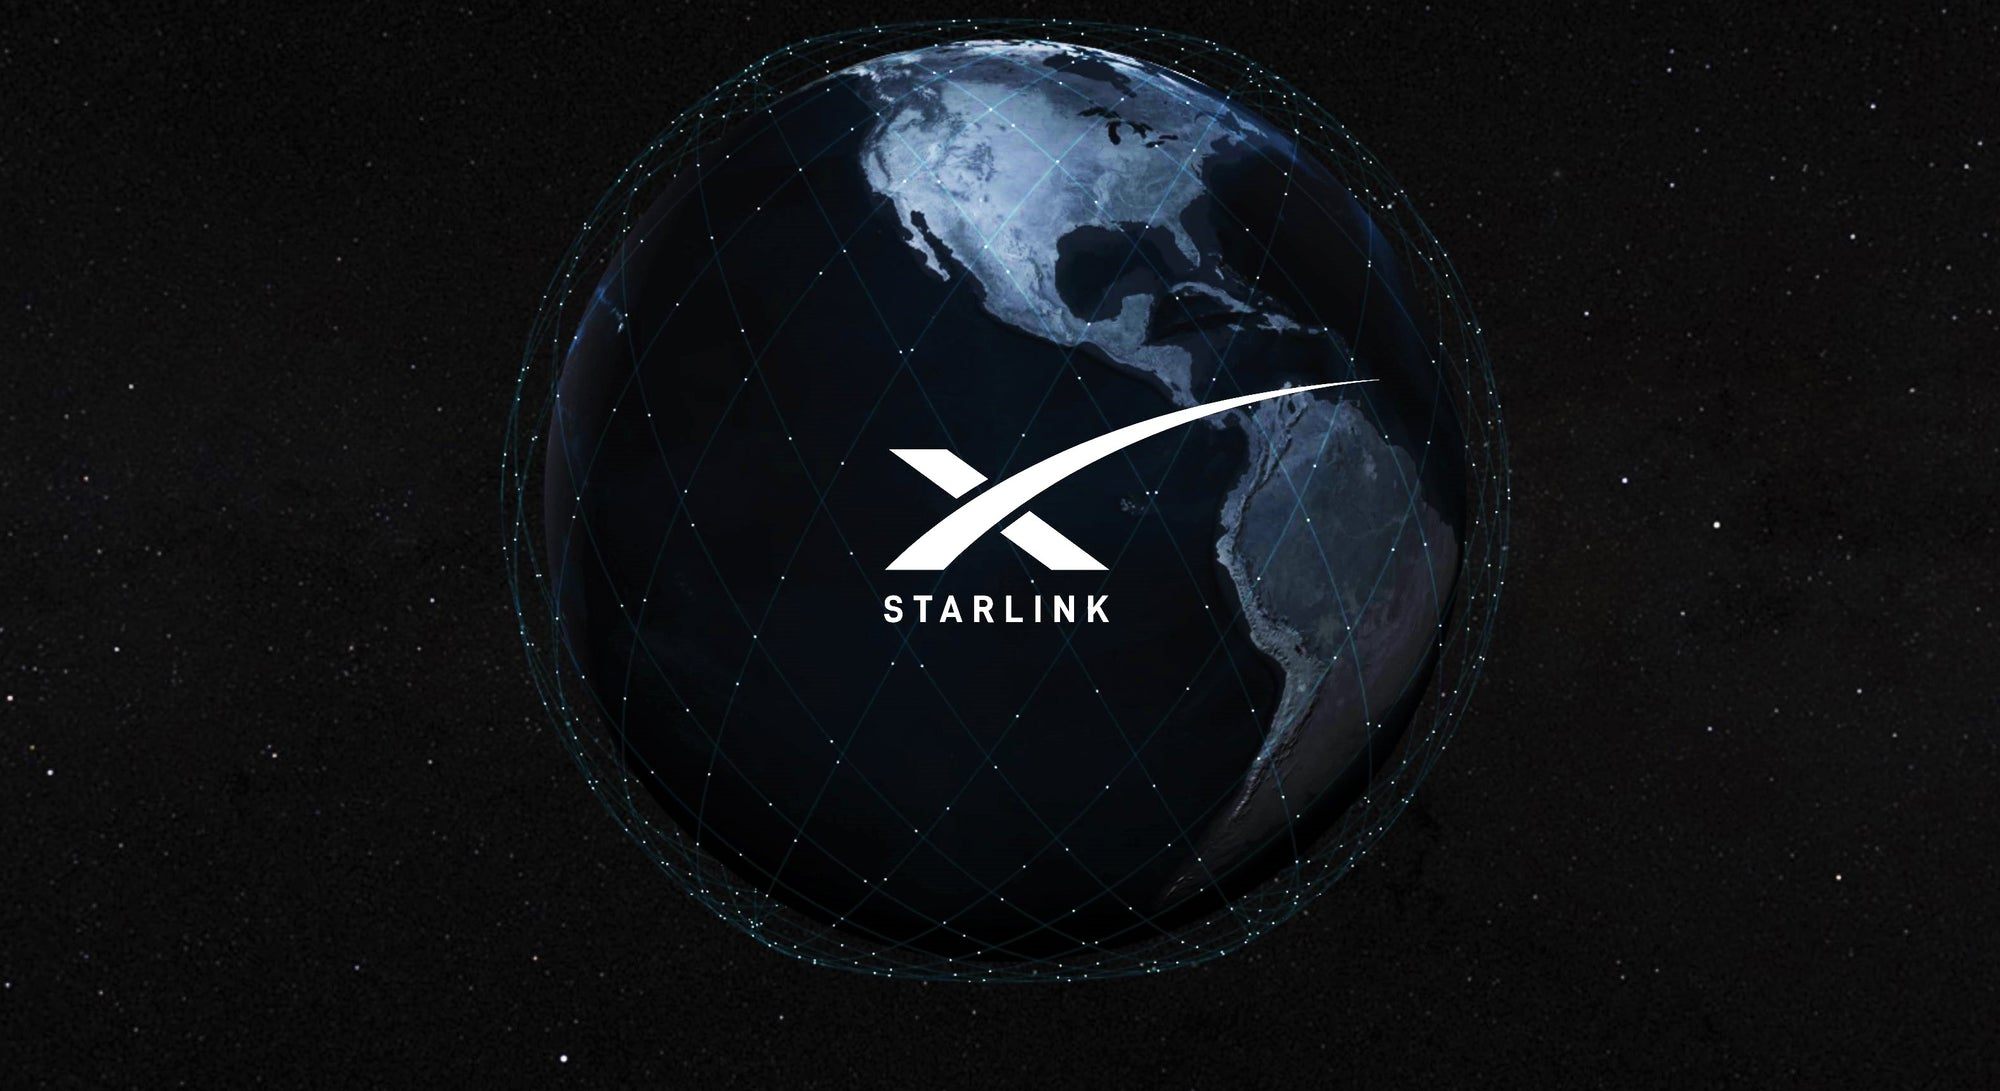 SpaceX submits application to offer Starlink broadband internet in Canada